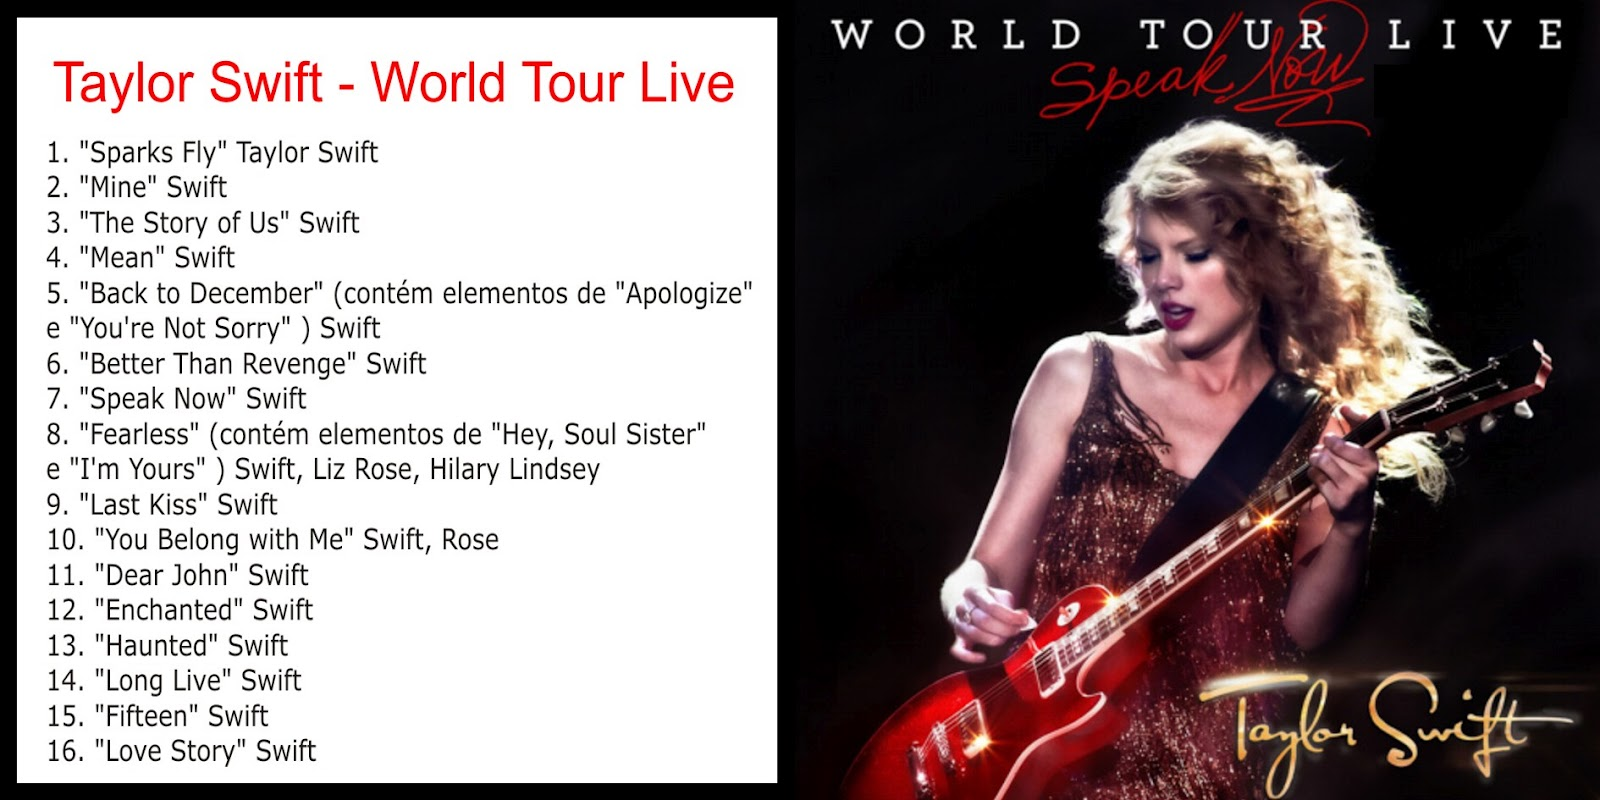 World Tour Taylor Swift Dvd